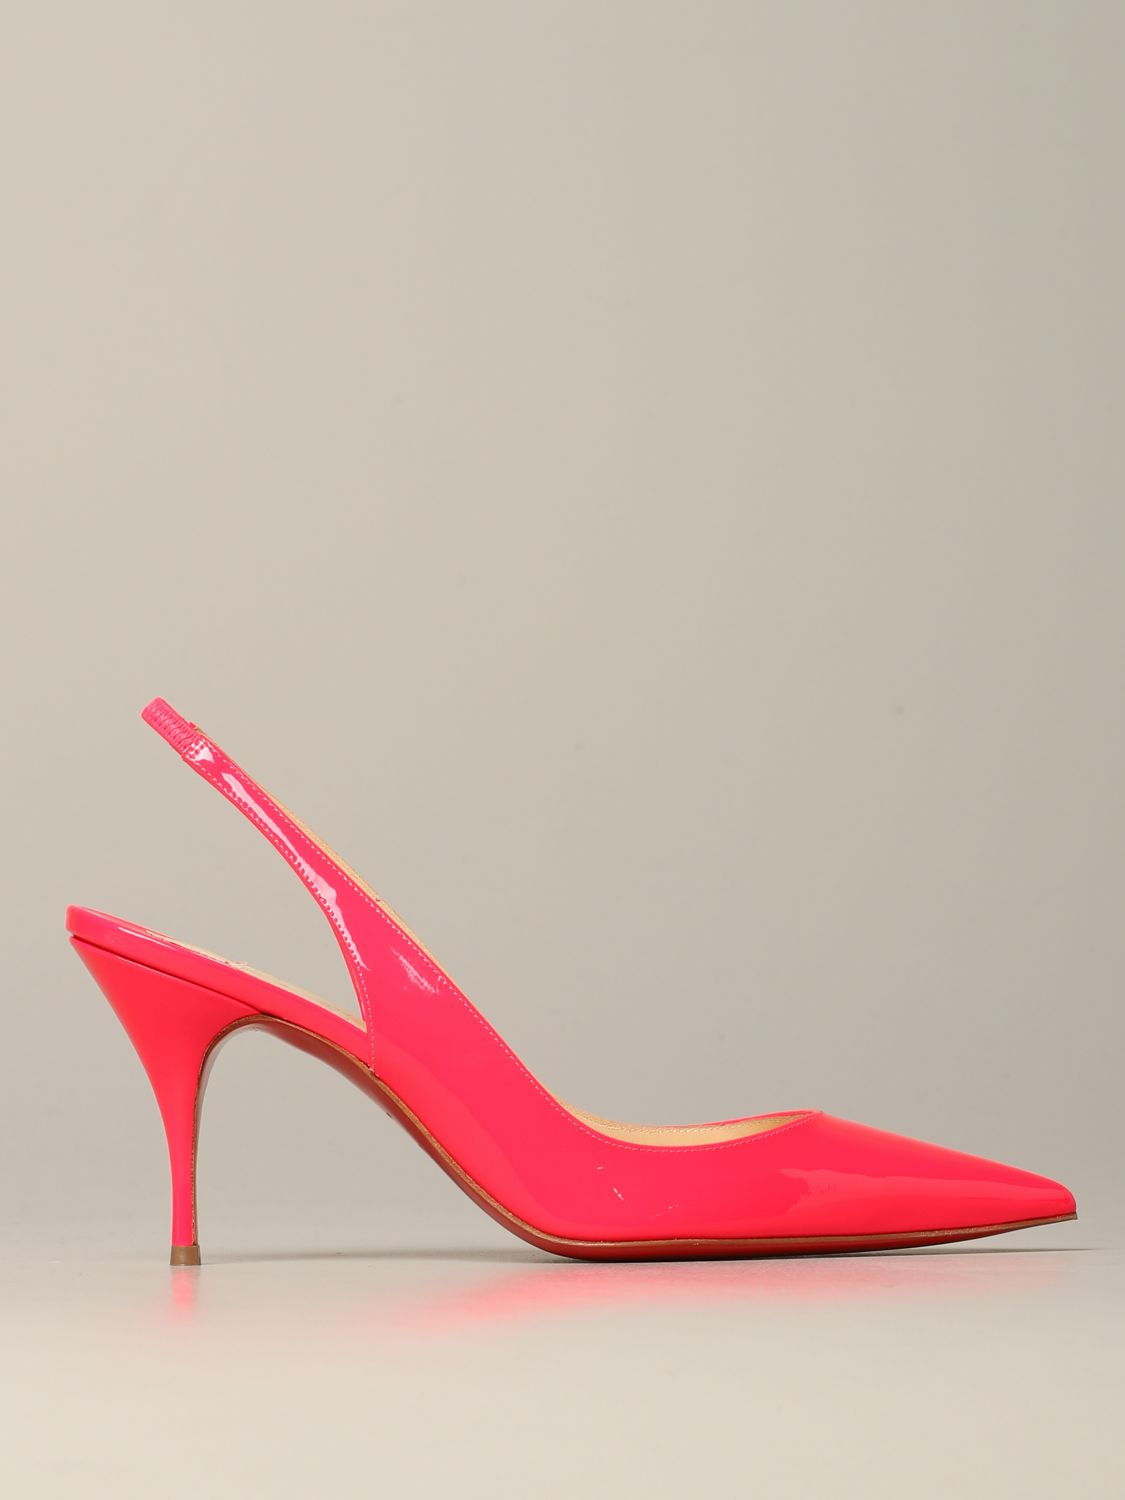 Christian Louboutin Clare sling back in fluorescent paint pink 1